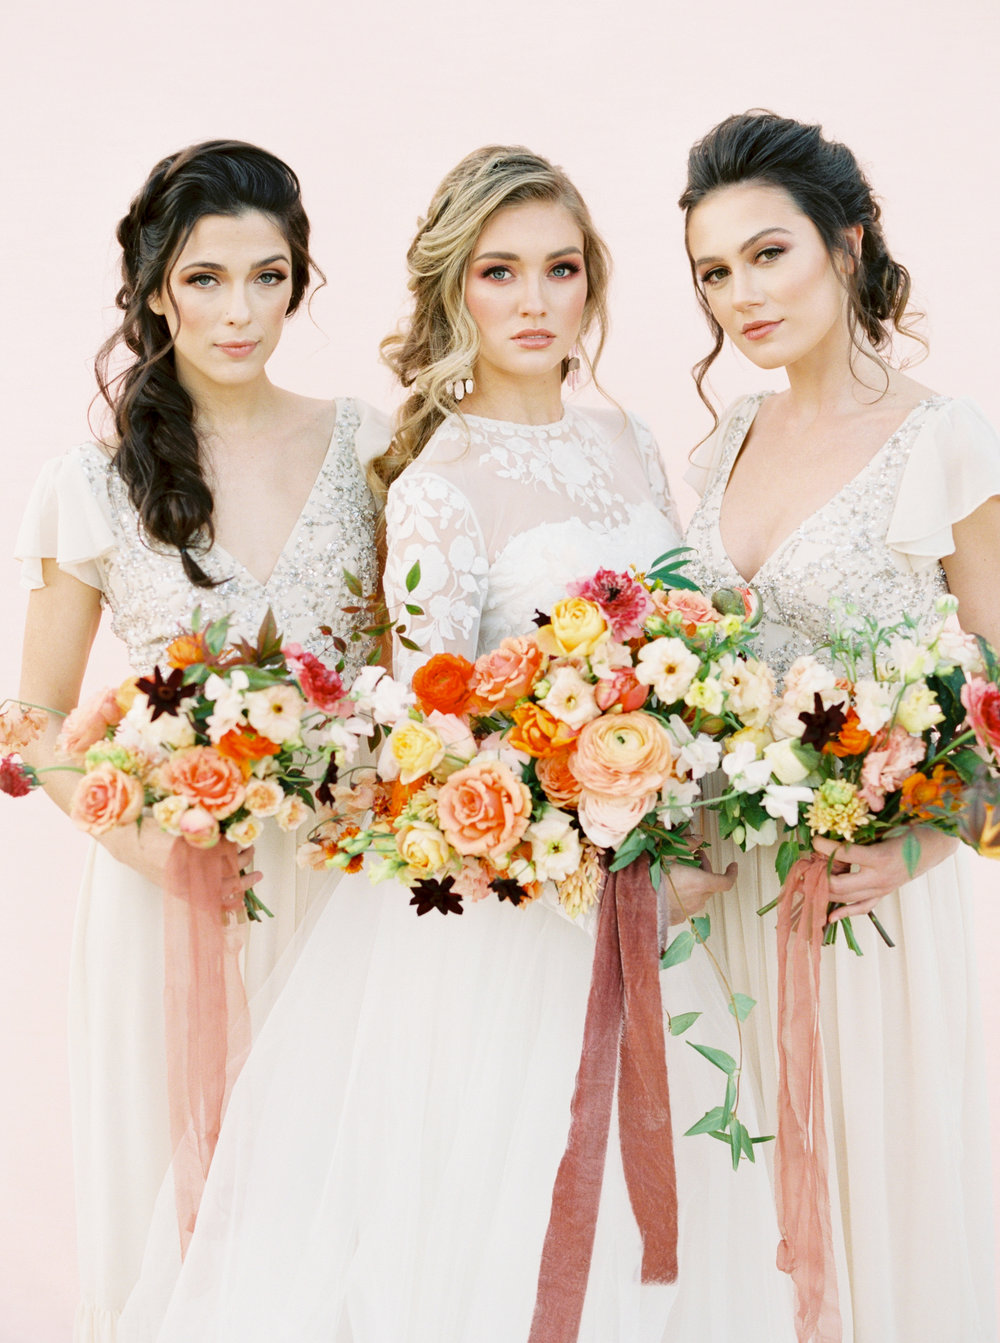 Bridal and Bridesmaids' Bouquets